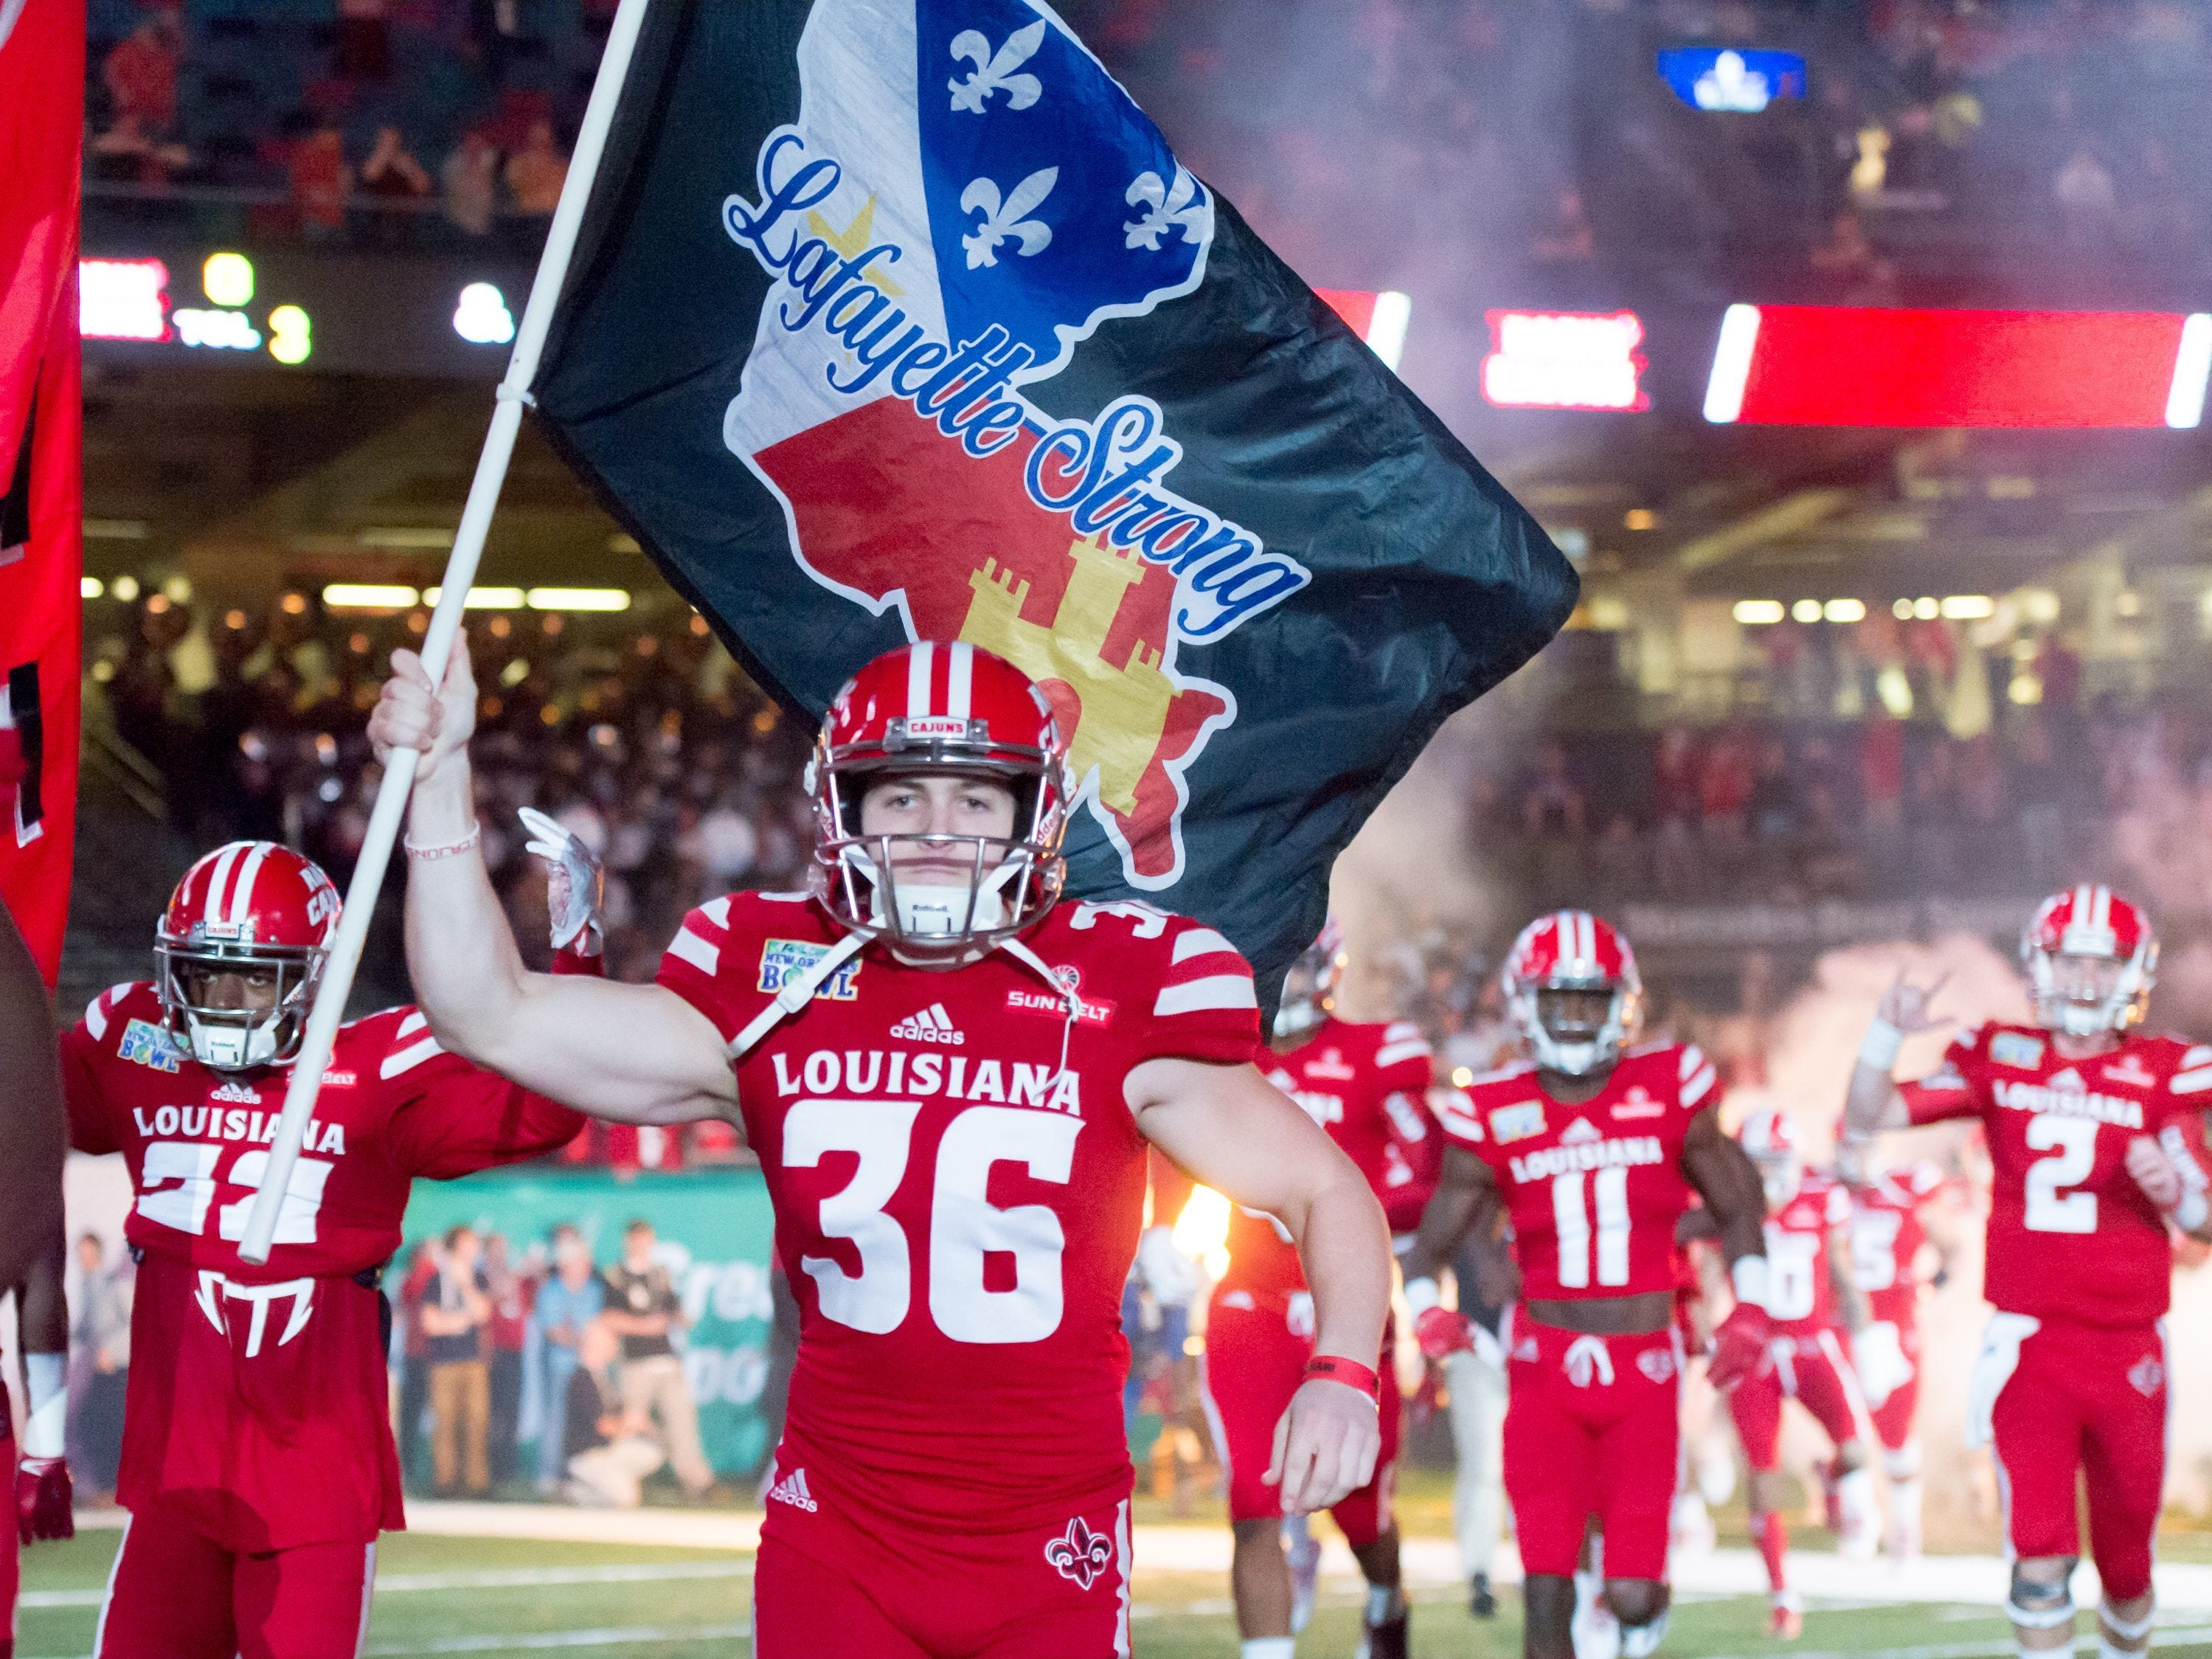 UL's road to the New Orleans Bowl not so easy anymore